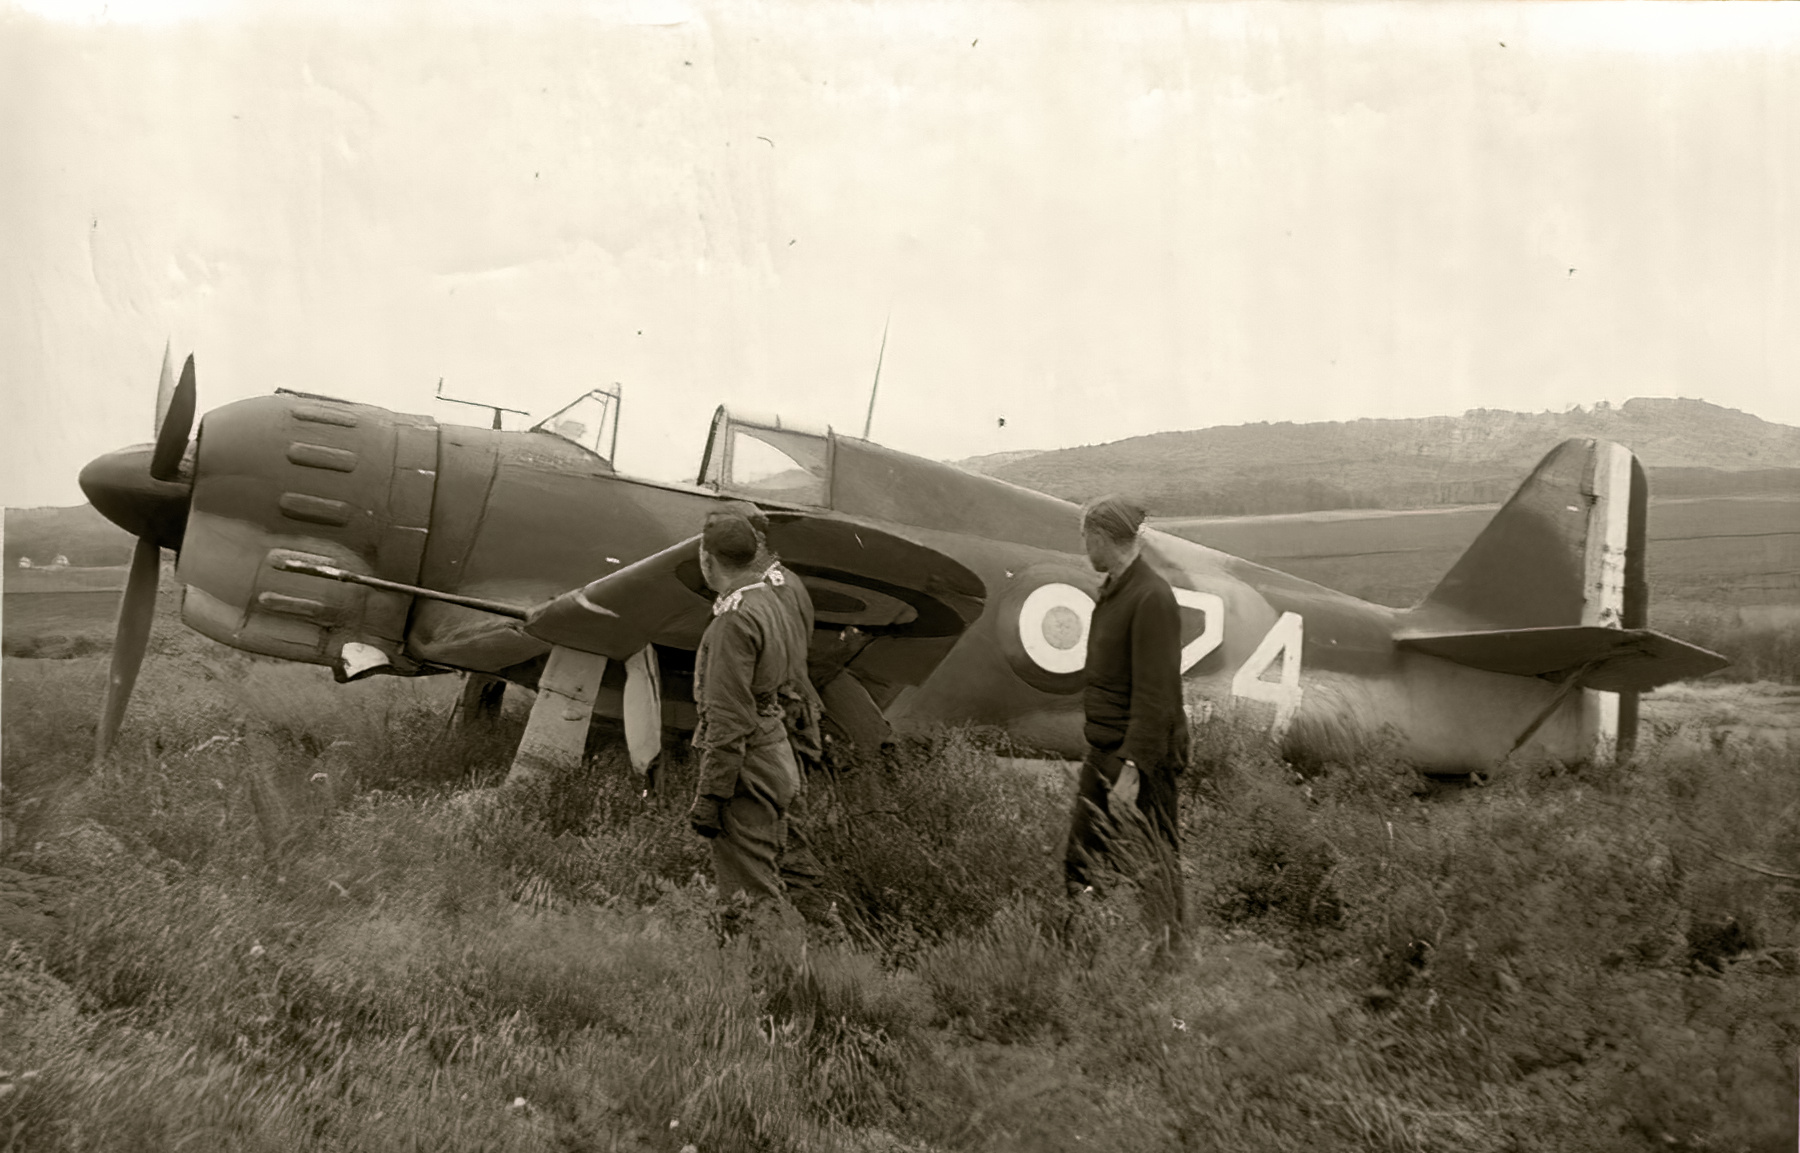 French Airforce Bloch MB 152C1 White 24 captured after the fall of France 1940 ebay 01